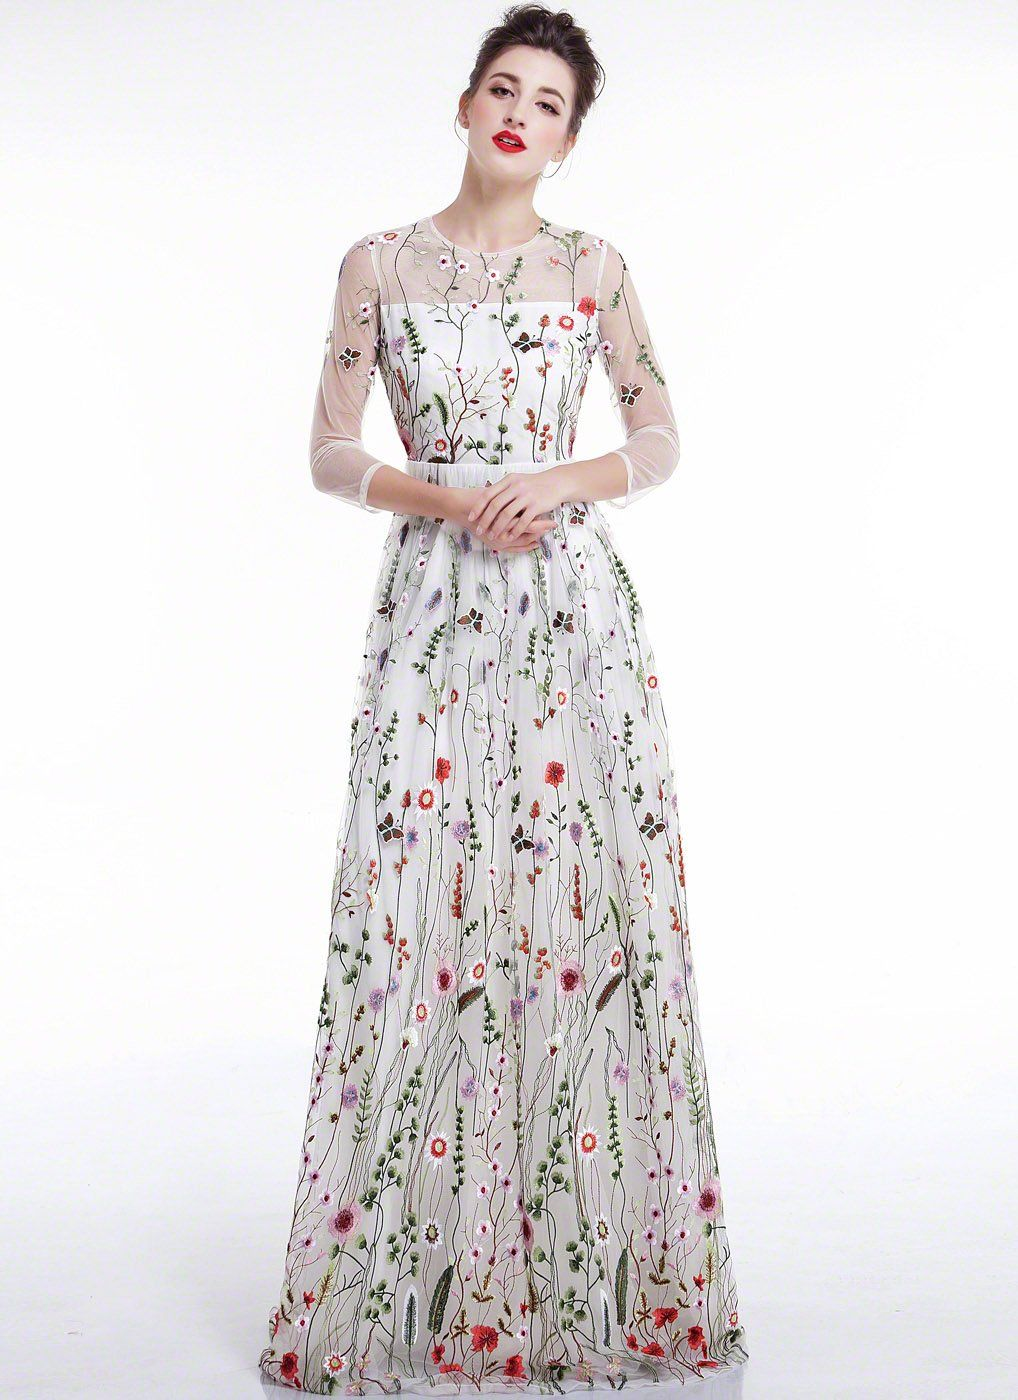 White Tulle Colorful Floral Embroidery Whimsical Maxi Evening Dress with  Sheer 3 4 Sleeves 9b044f104